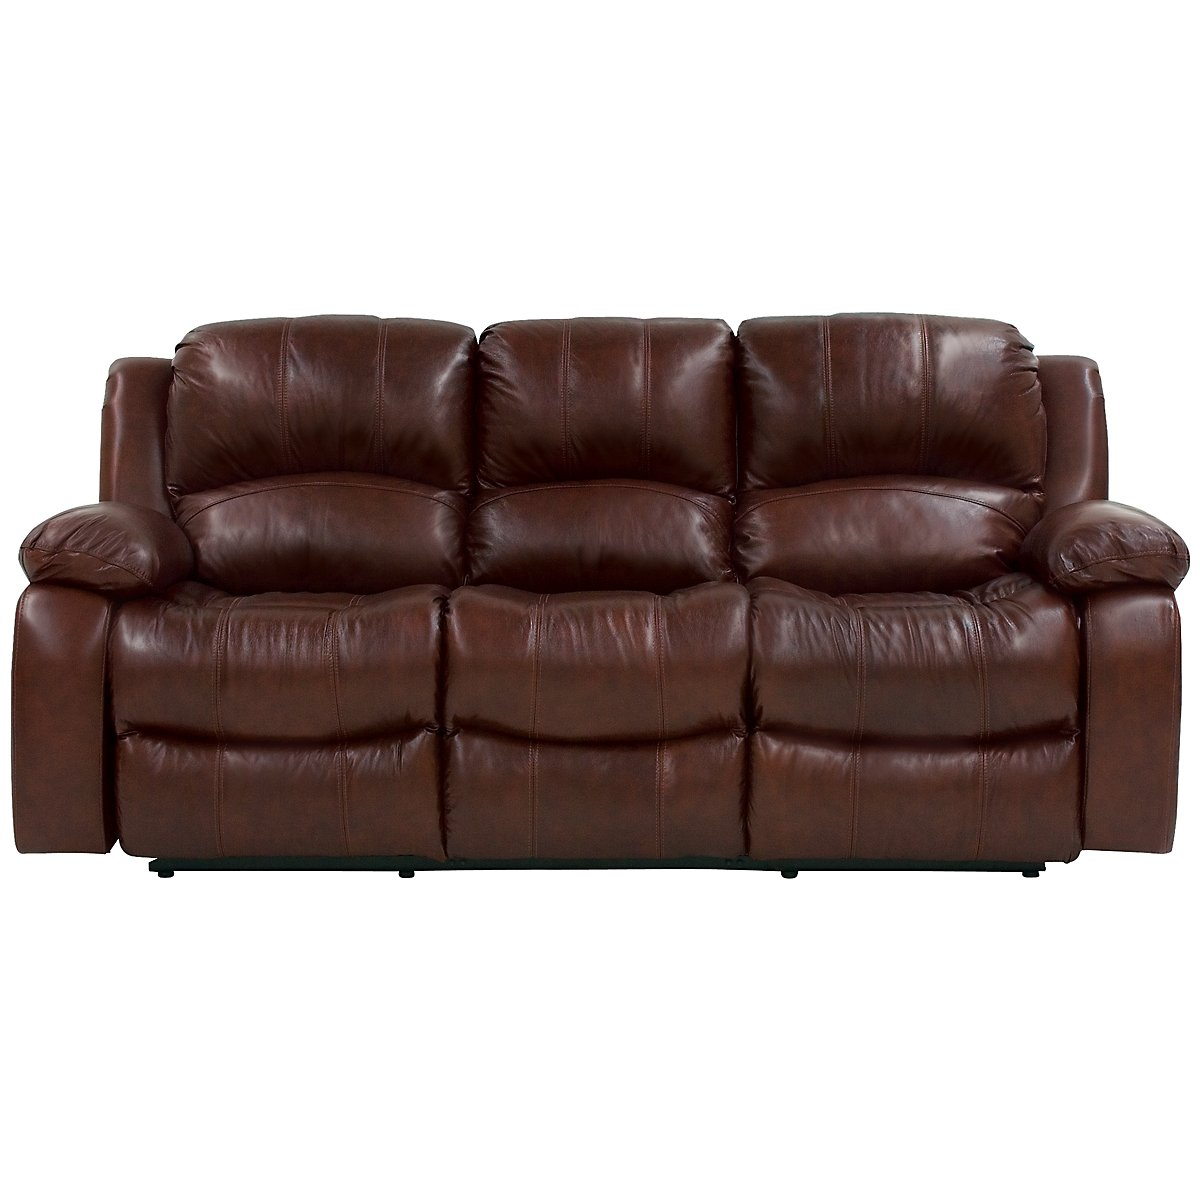 Tyler3 Md Brown Leather & Vinyl Power Reclining Sofa